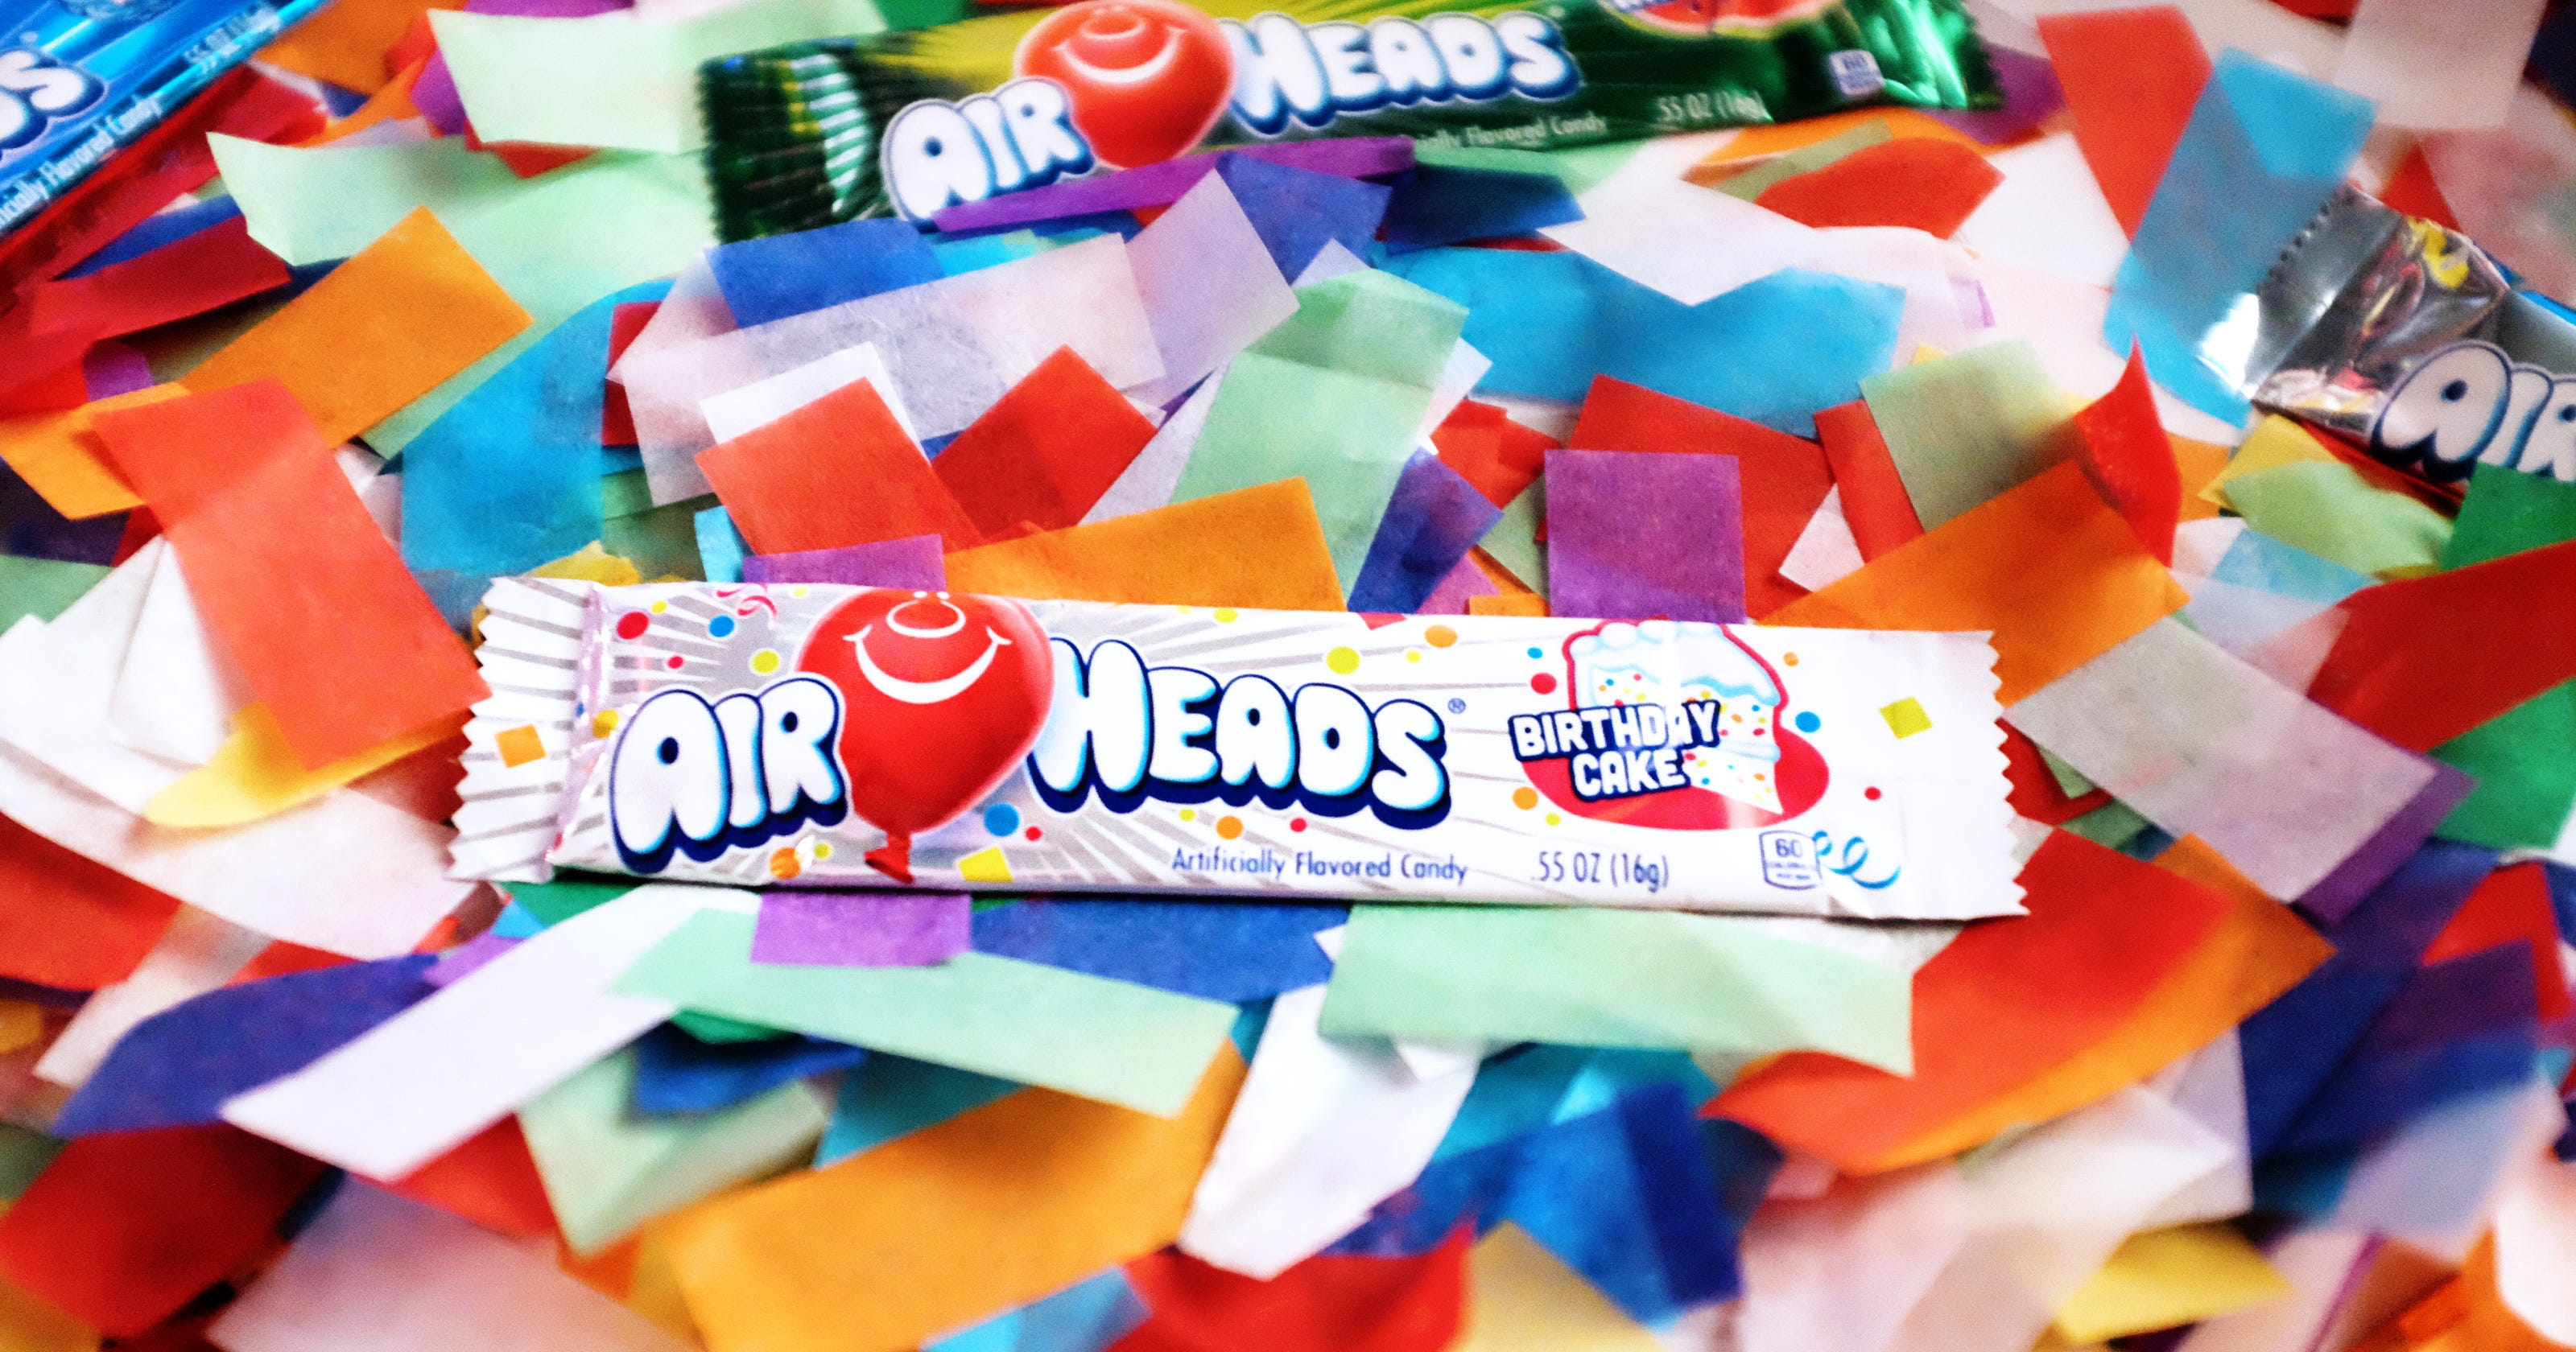 Airheads Candy Debuts New Cake Flavor For Its Birthday